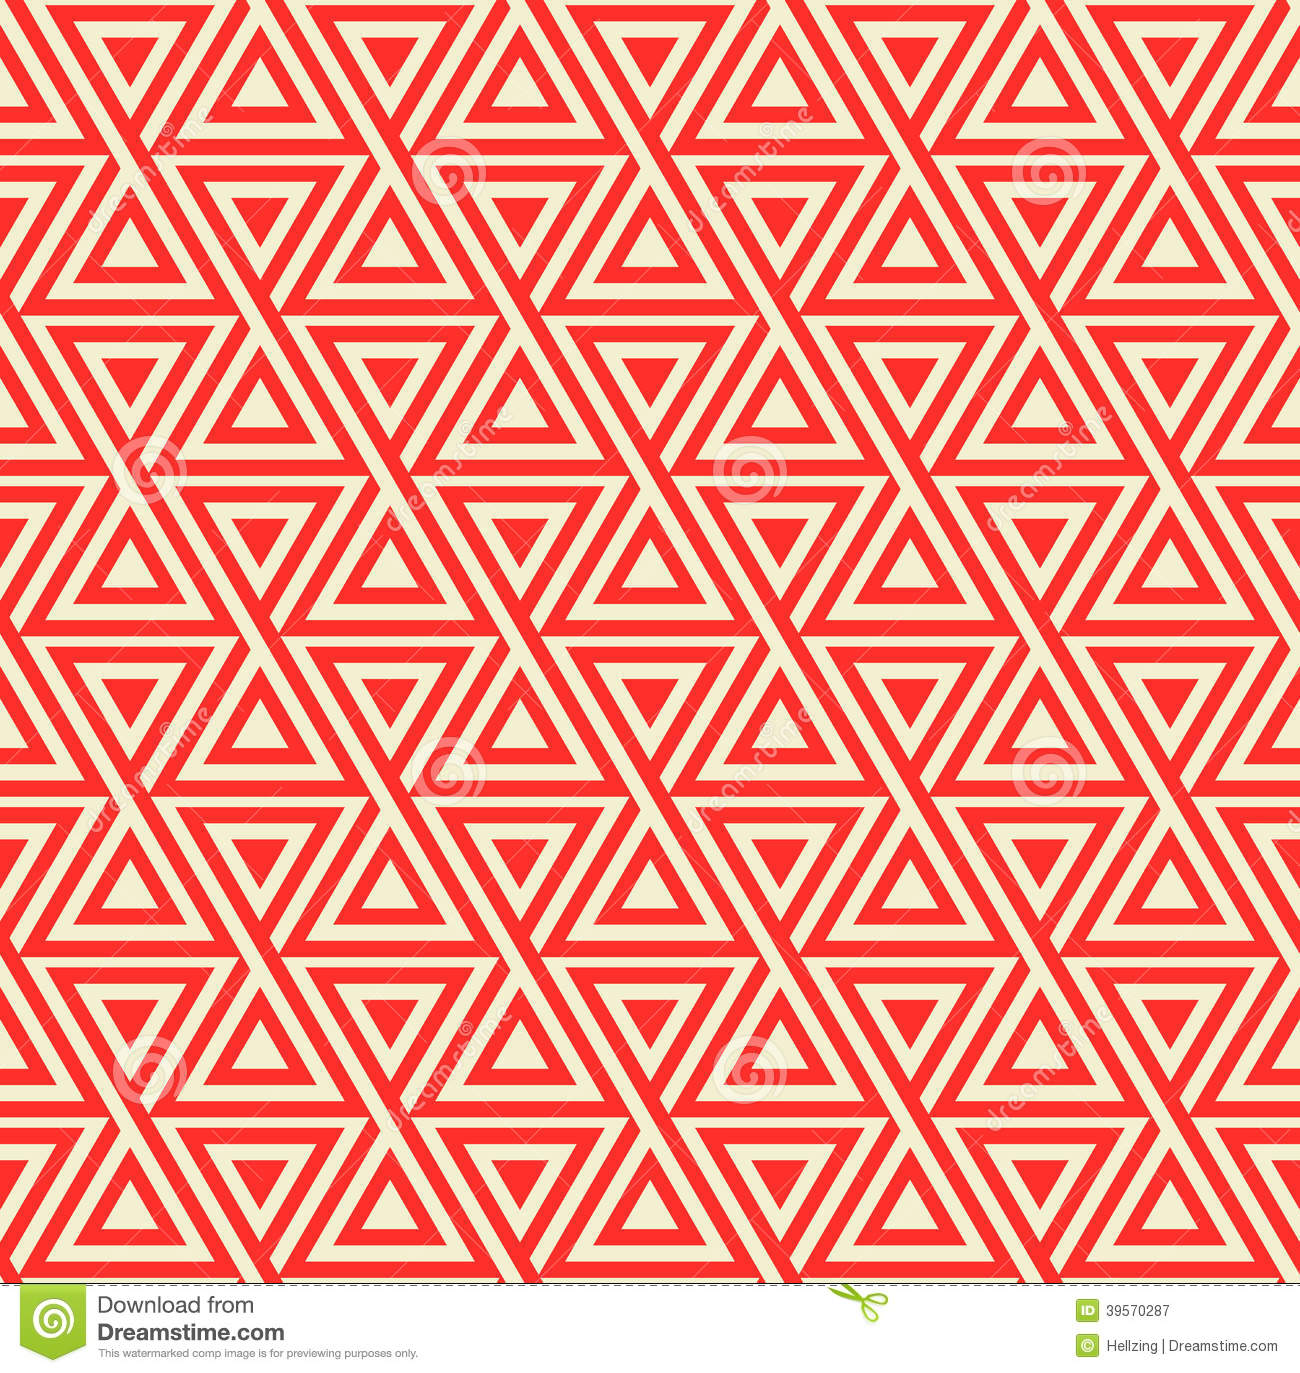 Abstract Seamless Geometric Pattern With Triangles Stock Vector Image 39570287